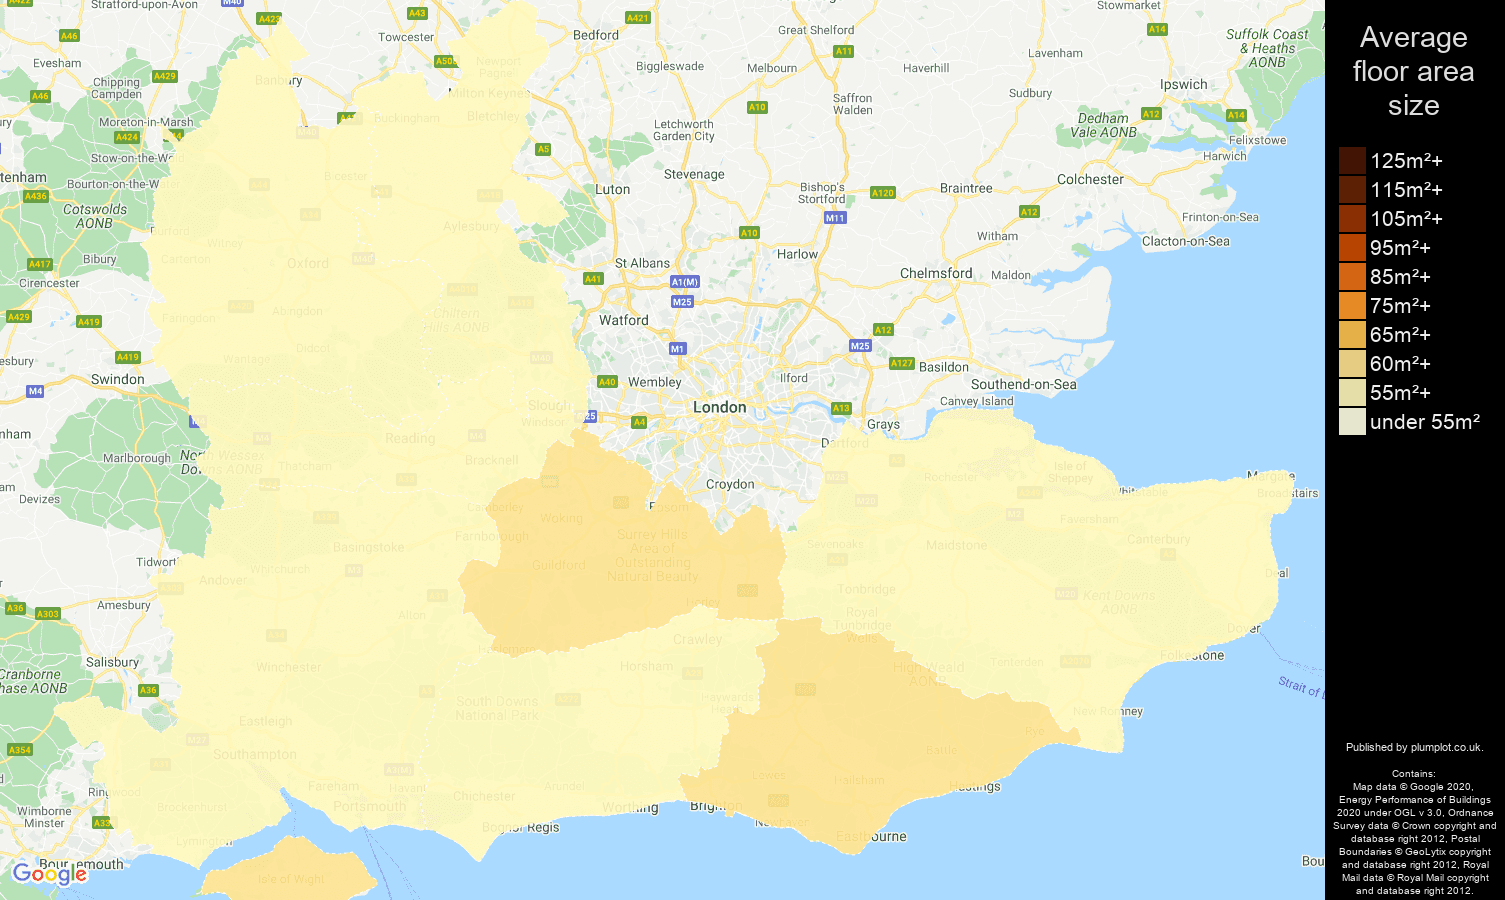 South East map of average floor area size of flats